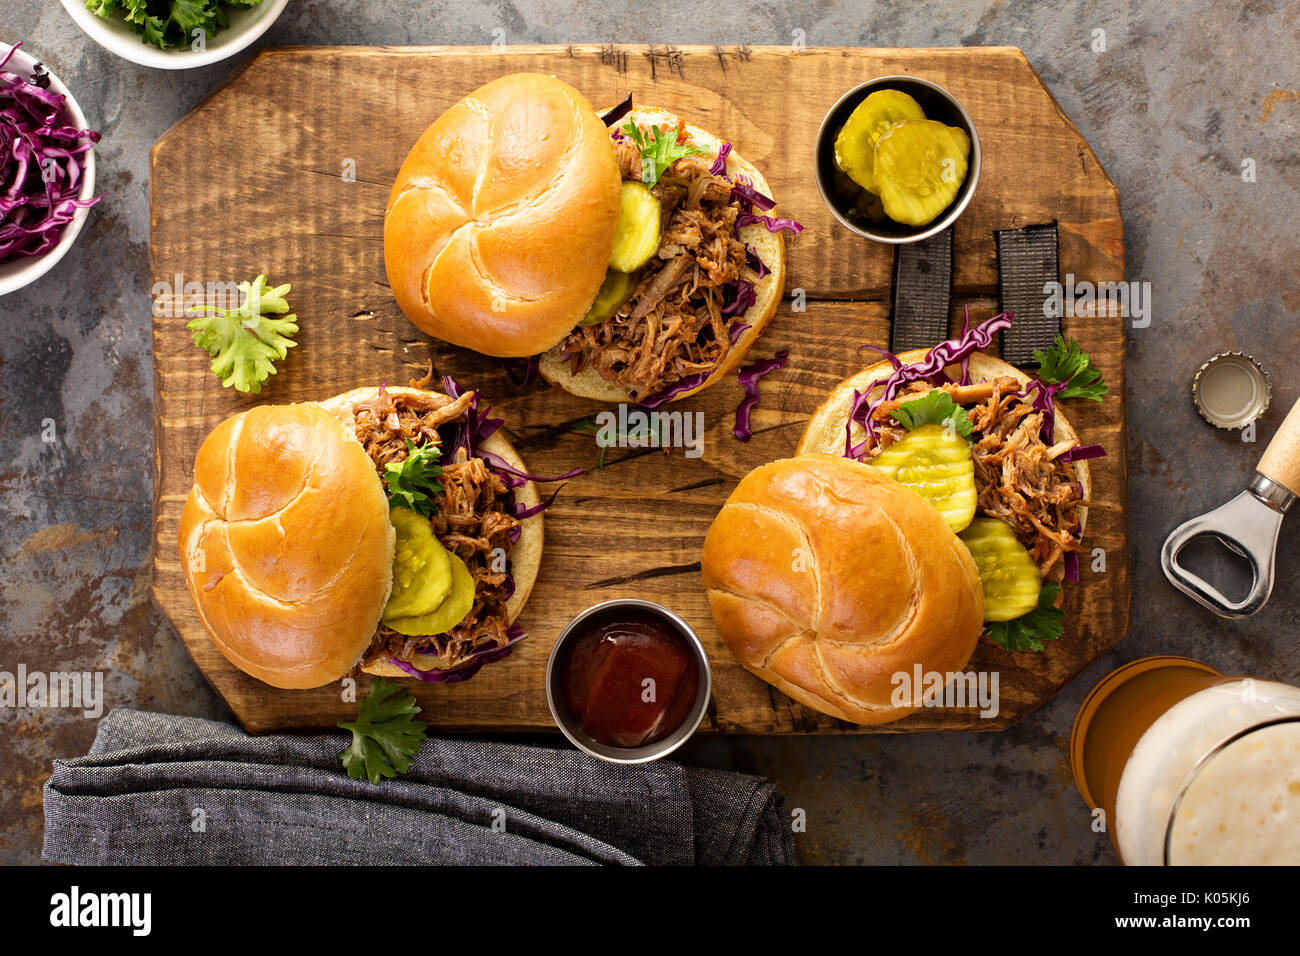 Pulled pork sandwiches with cabbage and pickles - Stock Image